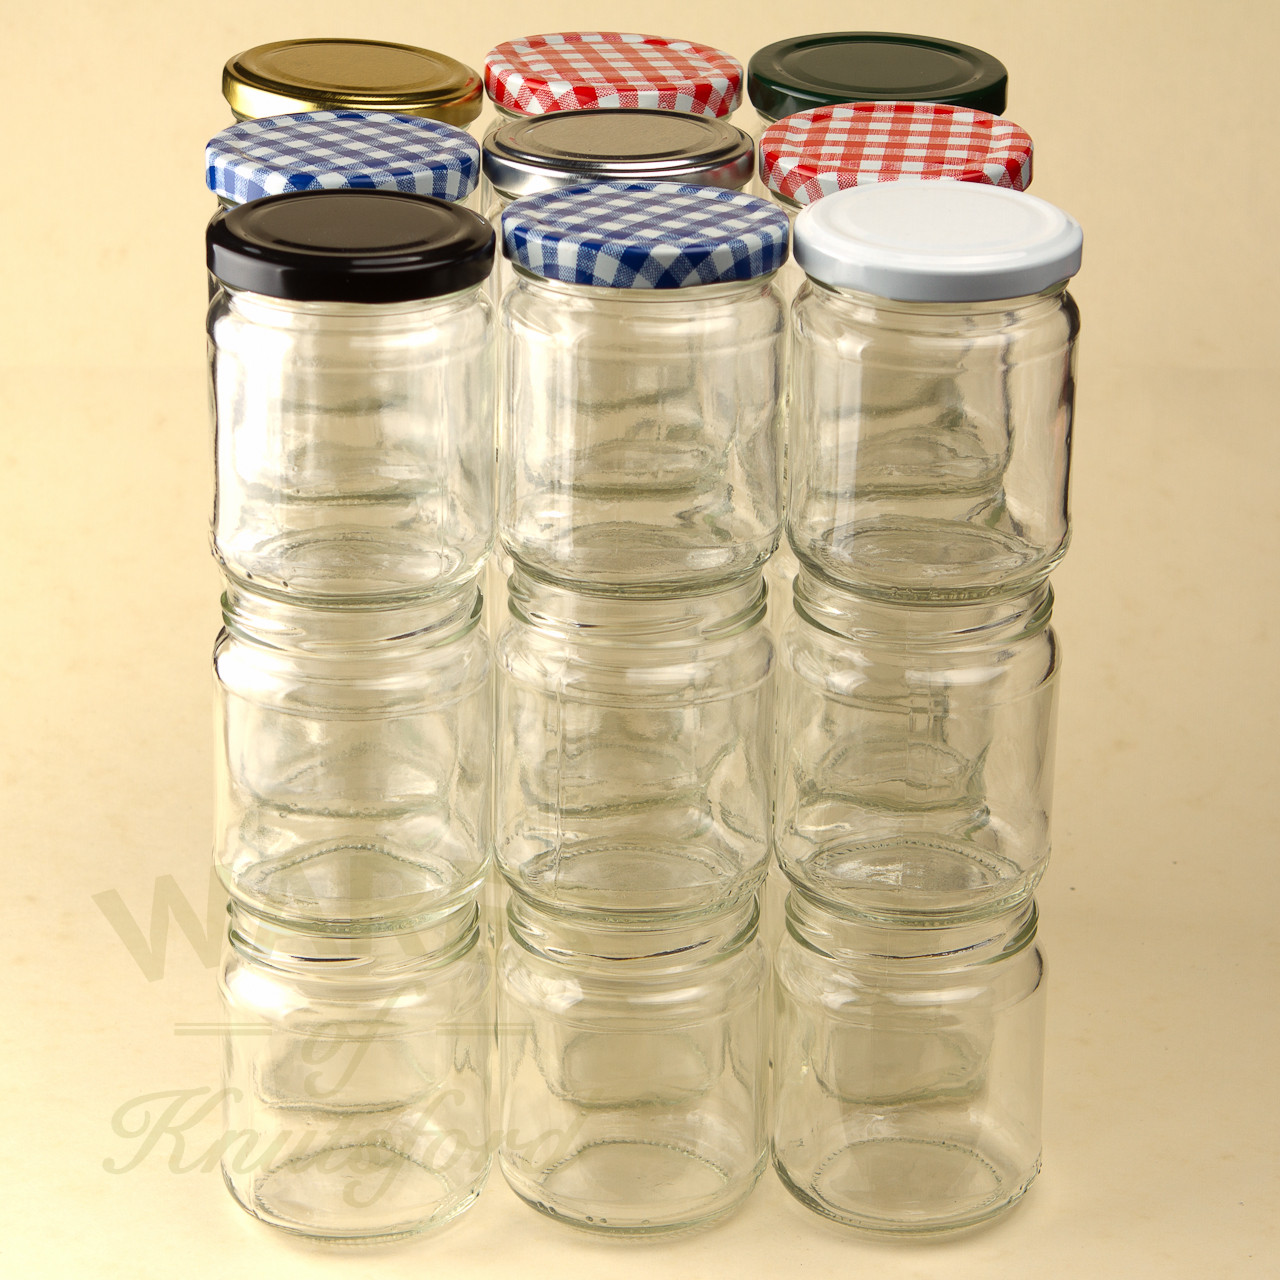 box of jam jars